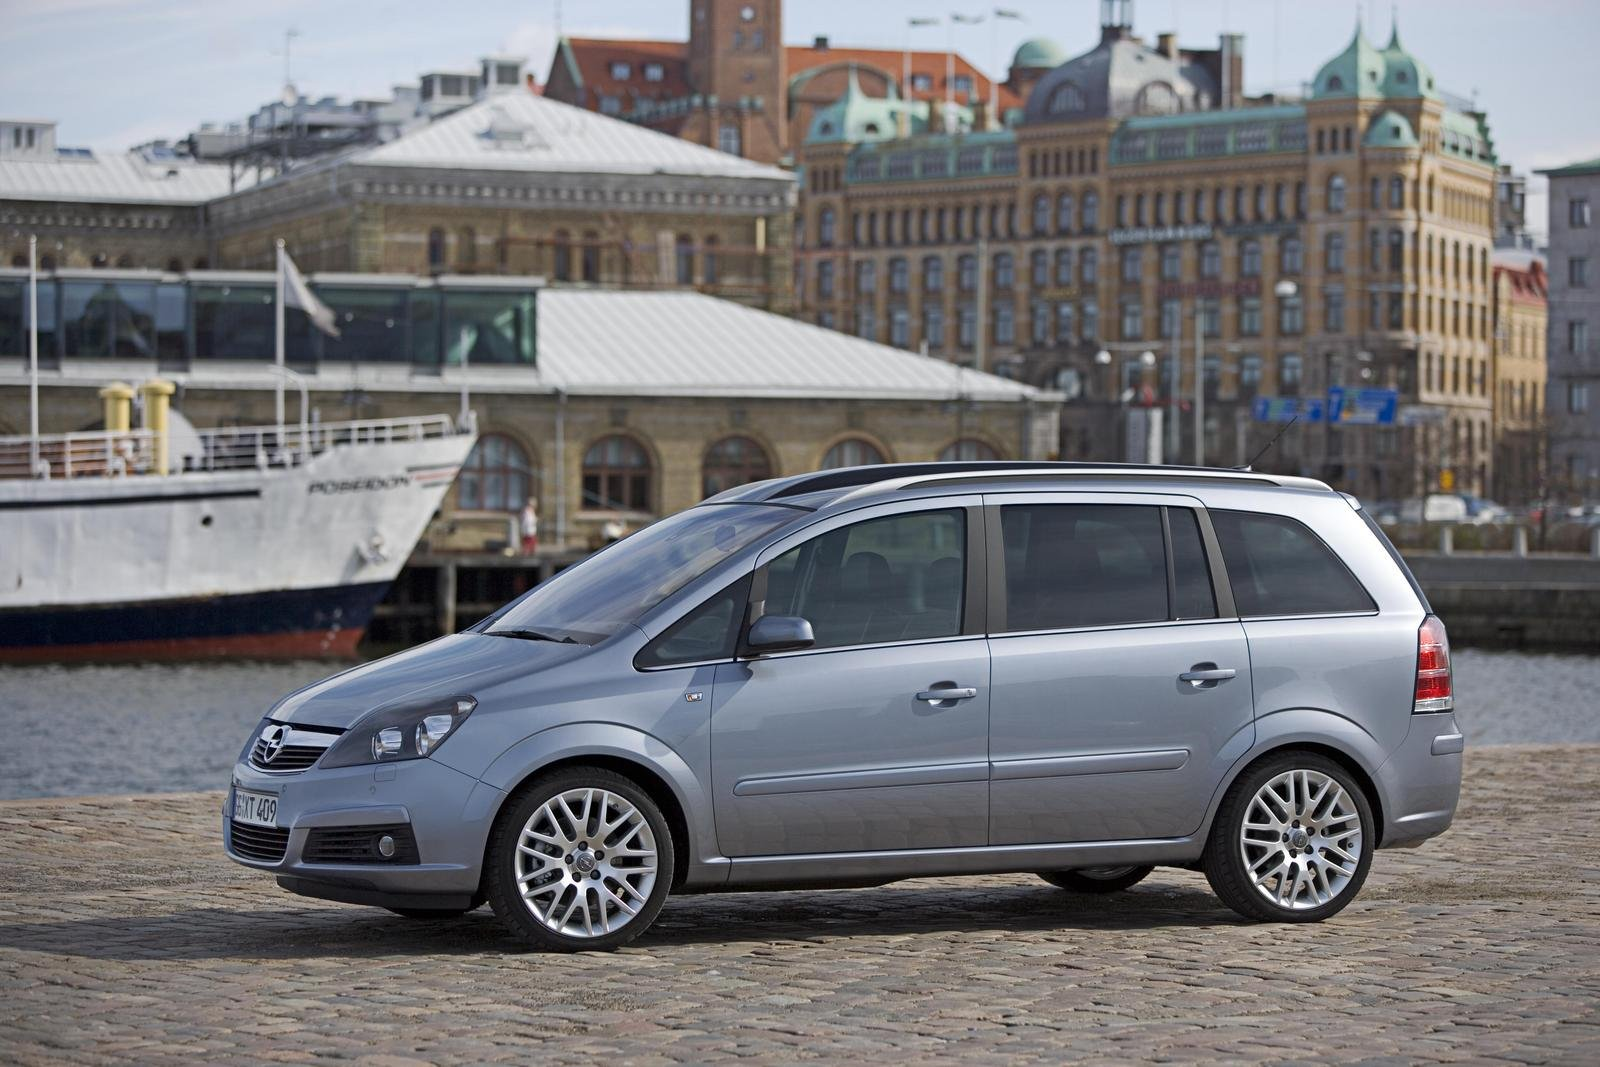 2007 opel zafira picture 163270 car review top speed. Black Bedroom Furniture Sets. Home Design Ideas